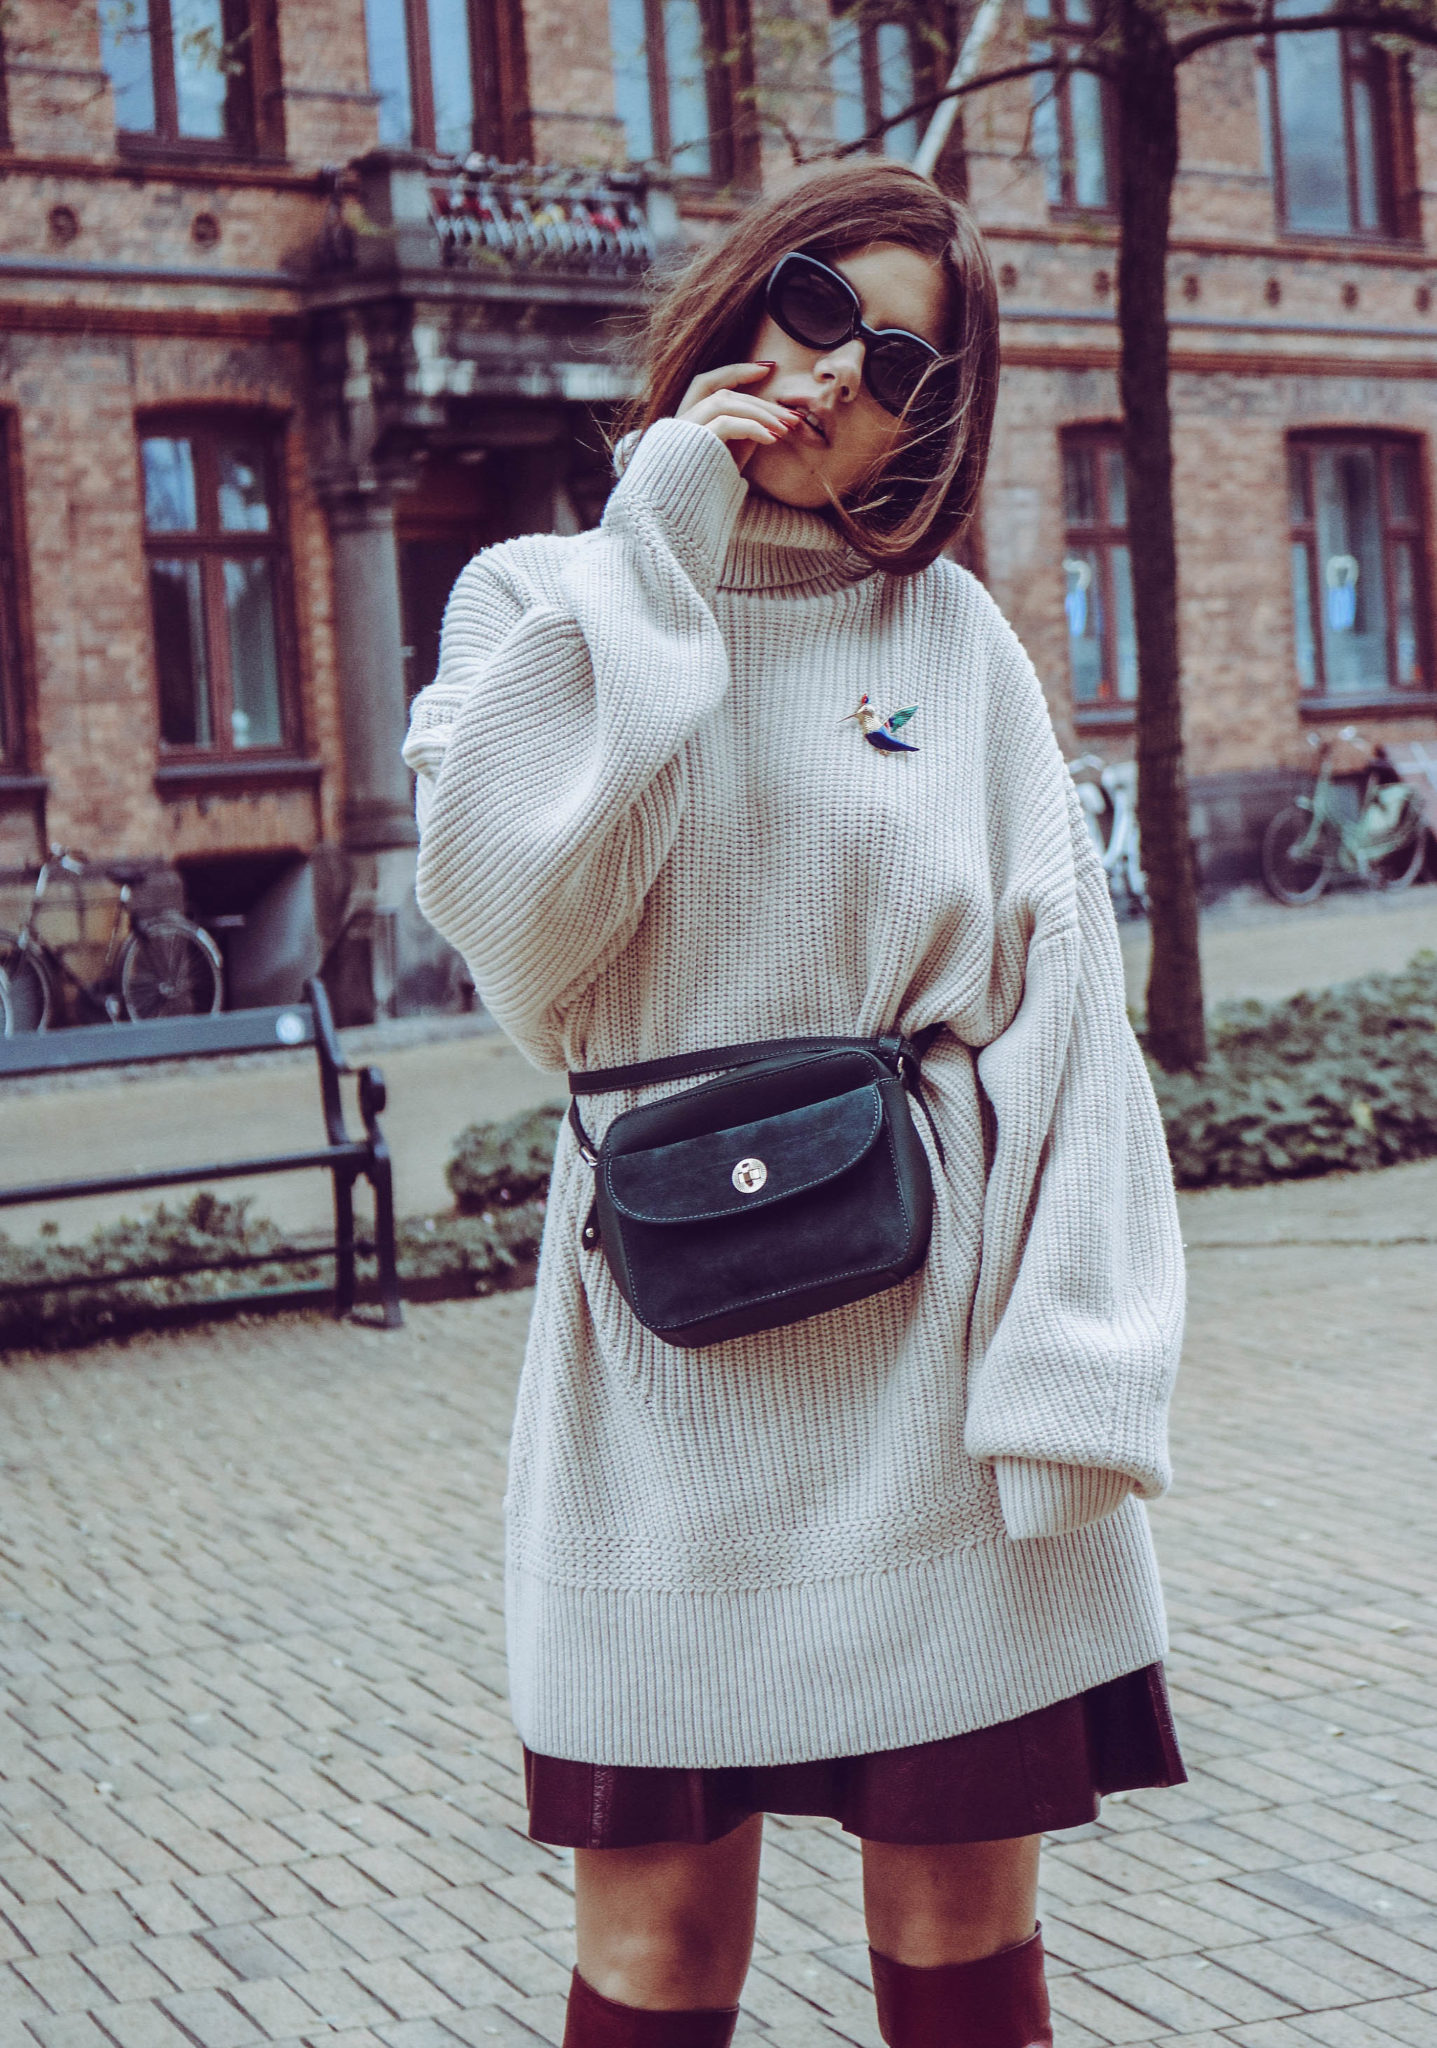 oversized knitwear, high boots, and bumbag